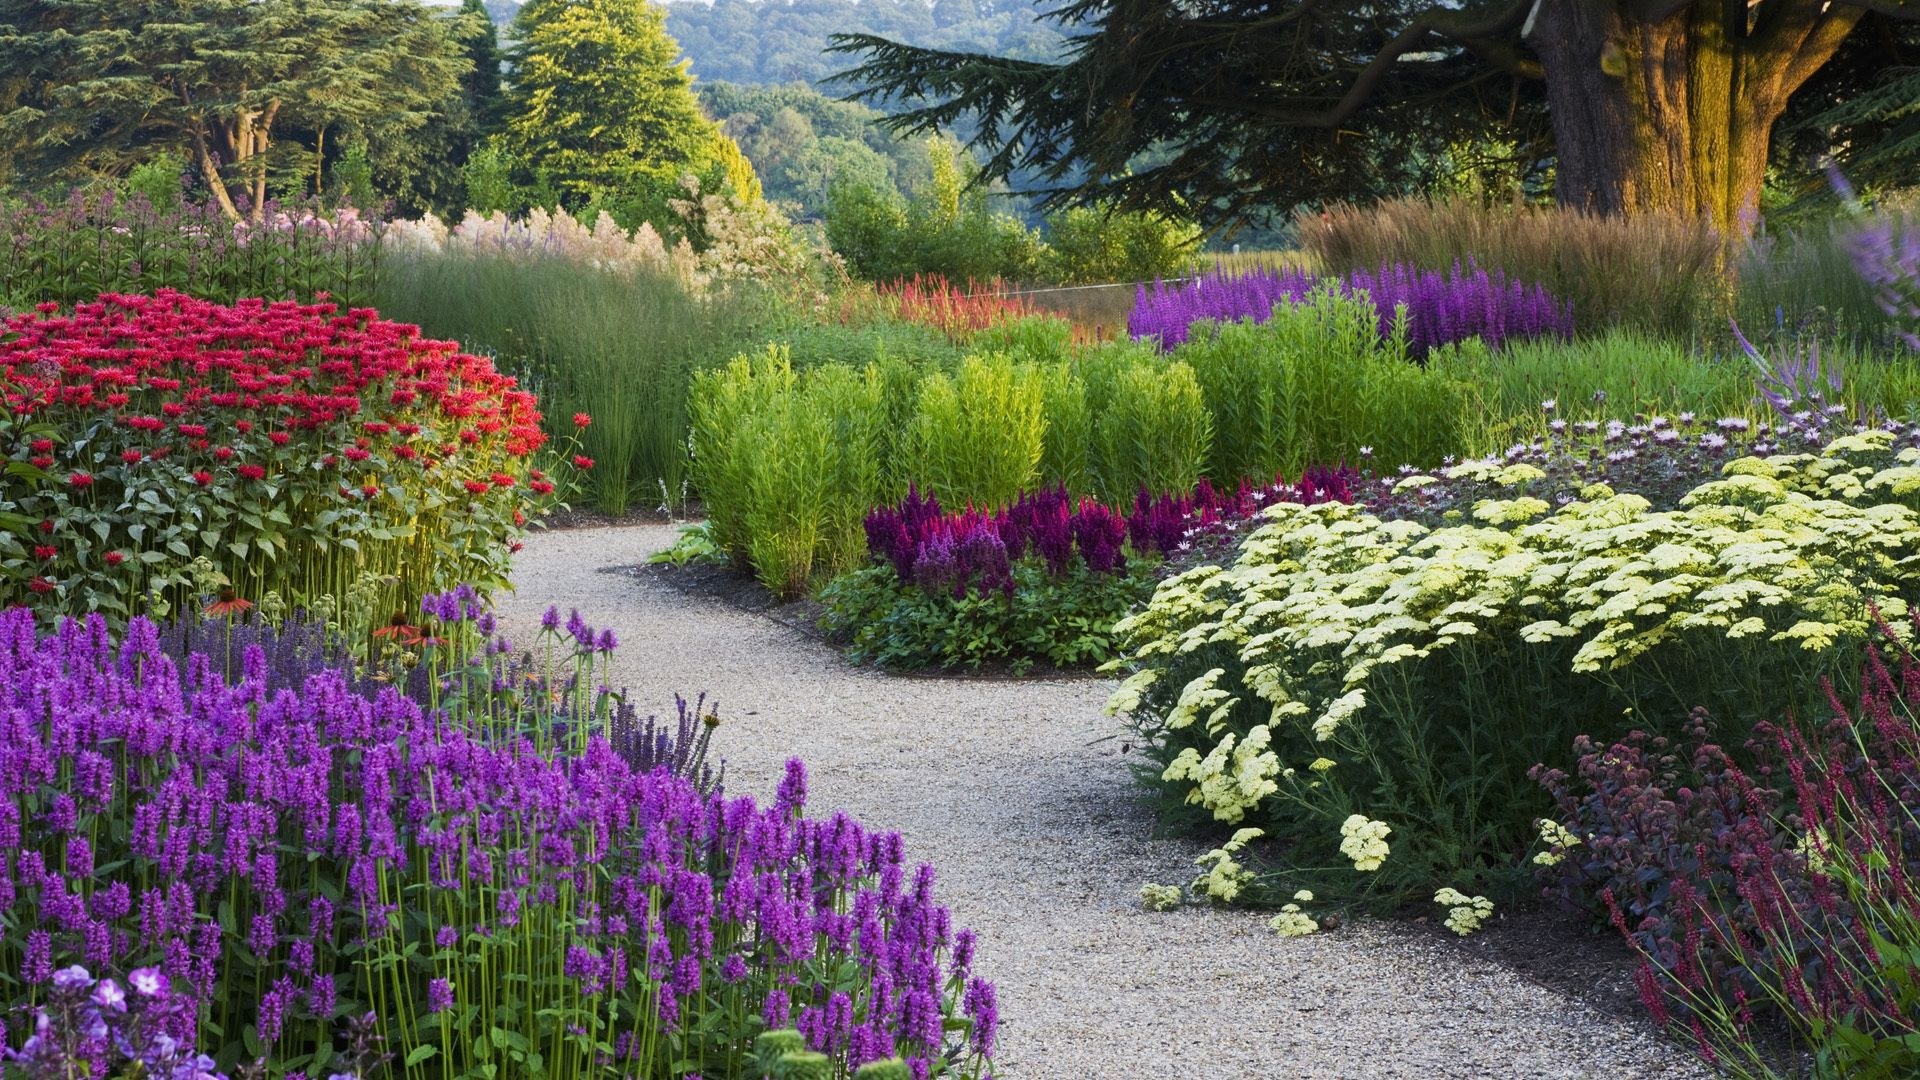 Flower Garden Path beautiful wallpapers of flower gardens - hd photos gallery